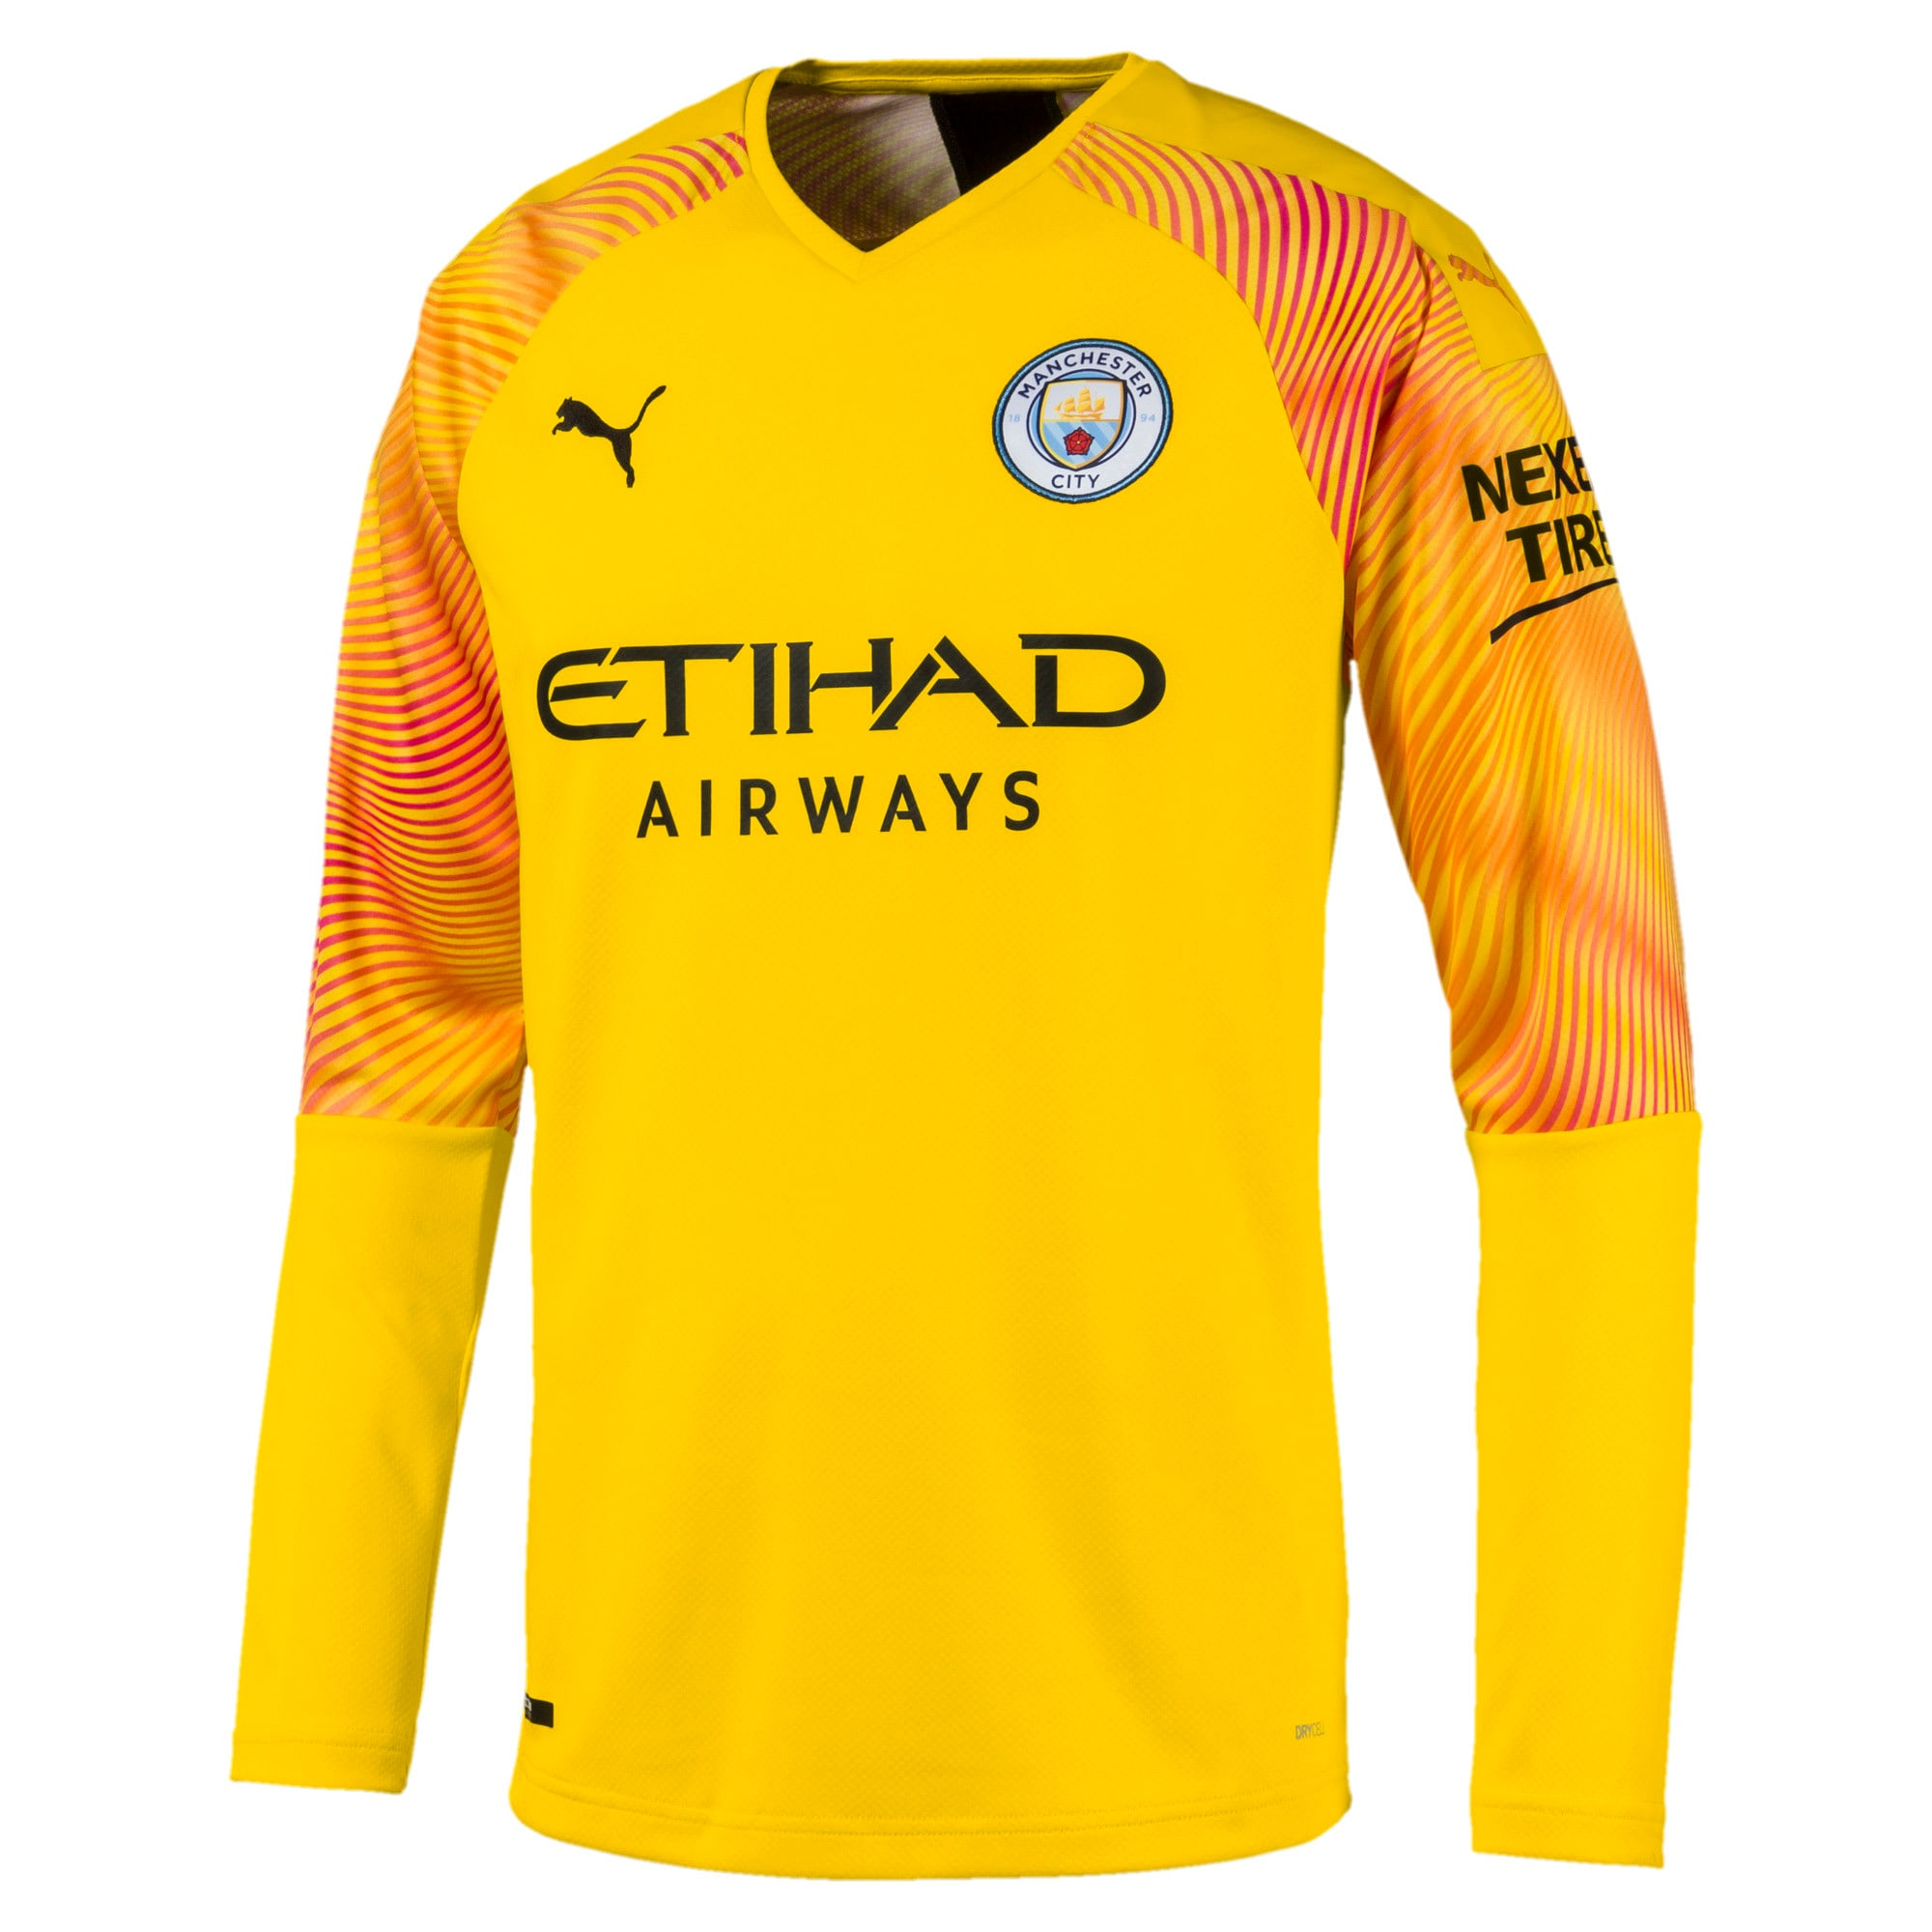 Thumbnail 1 of Man City Men's Replica Goalkeeper Jersey, Cyber Yellow-Puma Black, medium